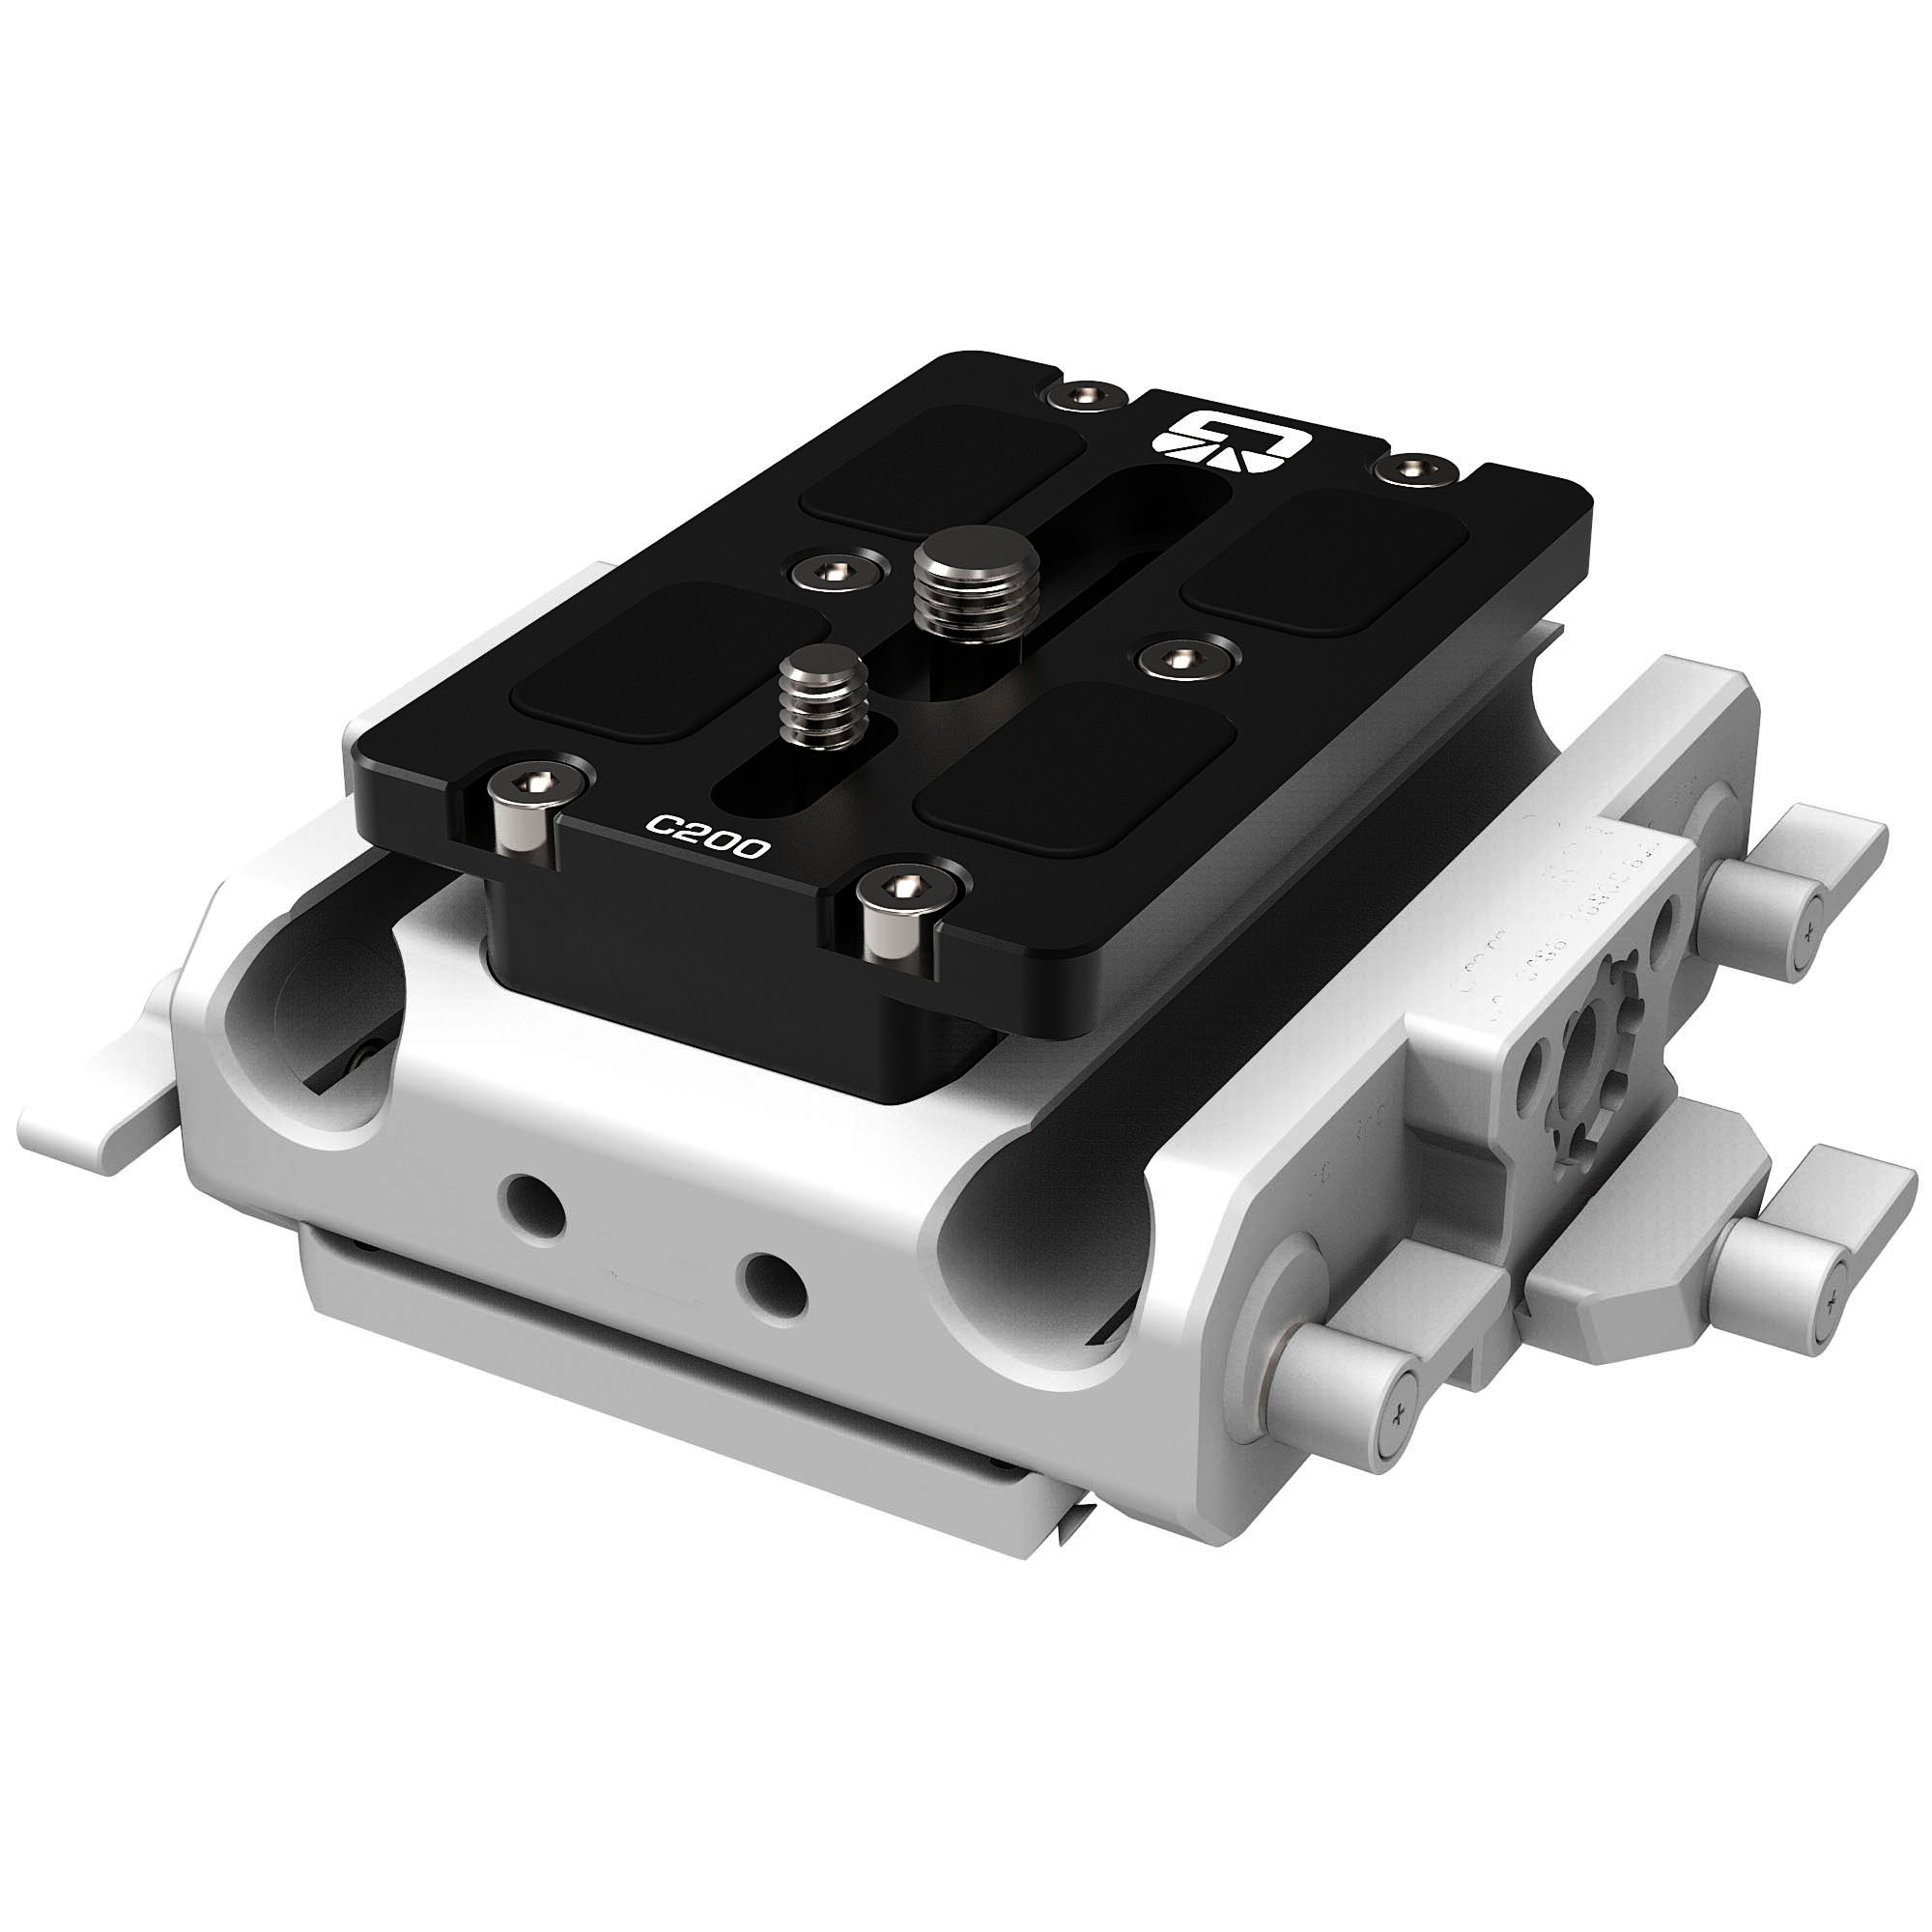 B4005 1001 Canon C200 Riser for Baseplate Core 3 1